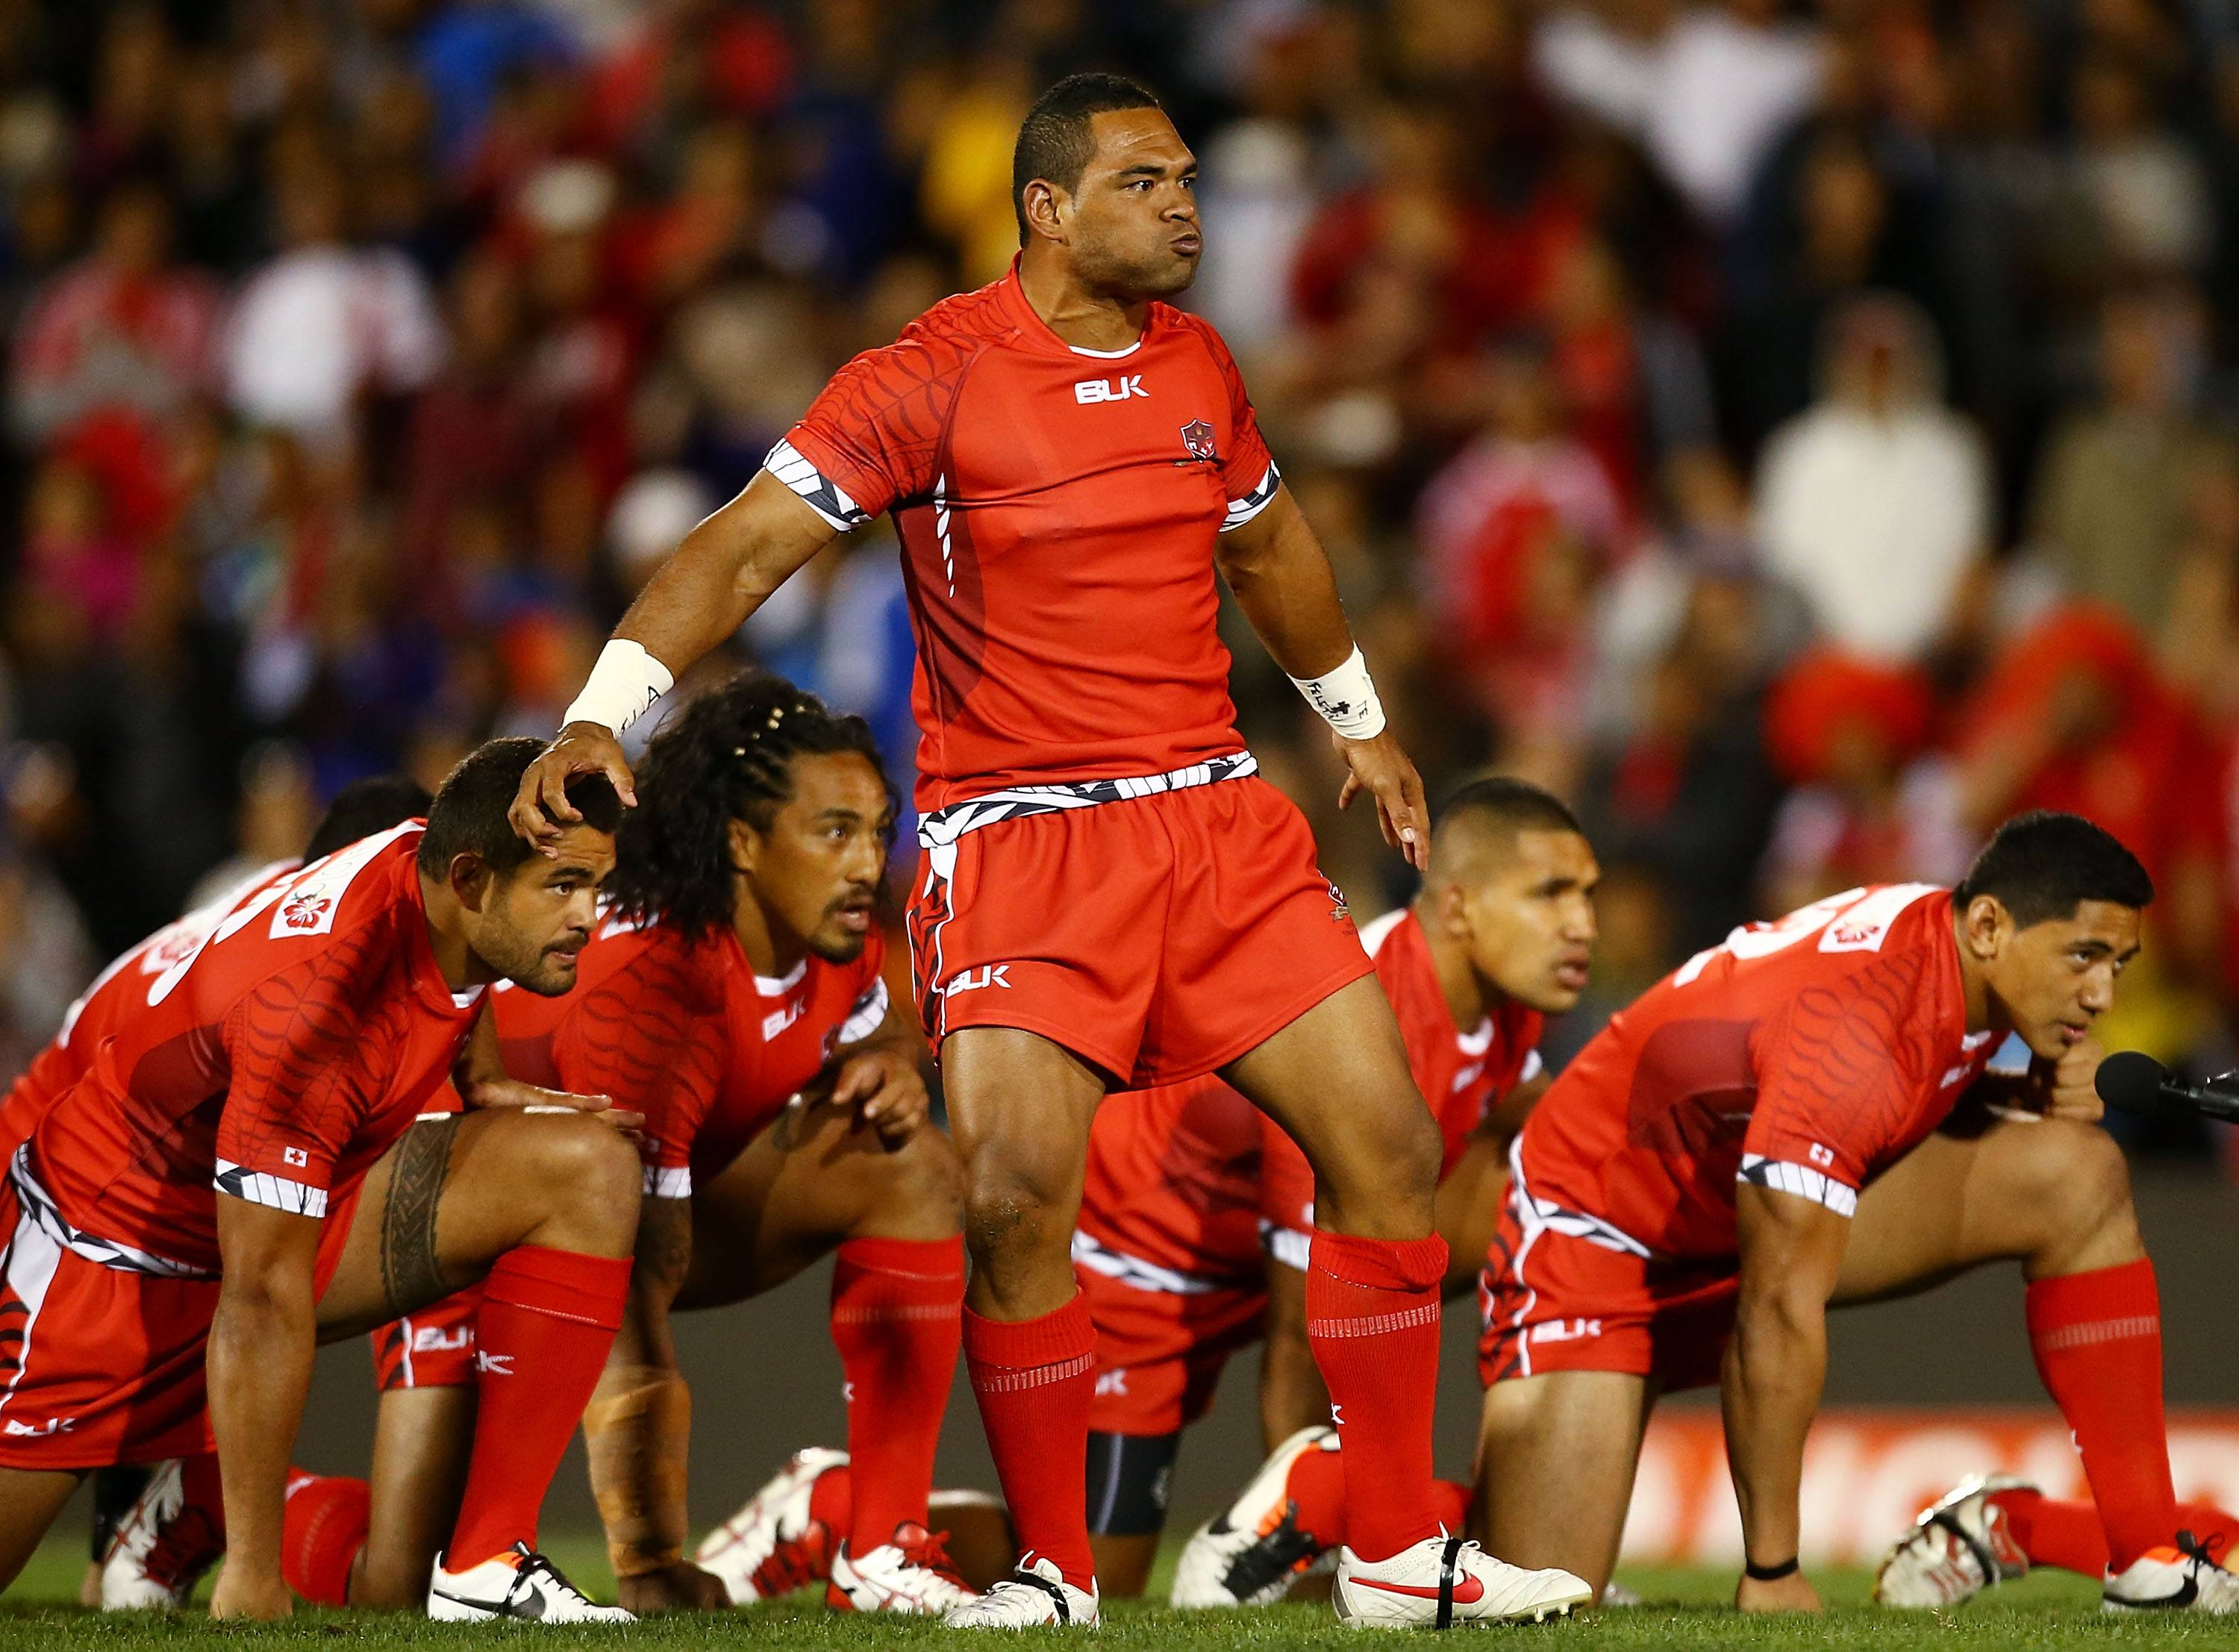 Rugby League History: Mate Ma'a Tonga